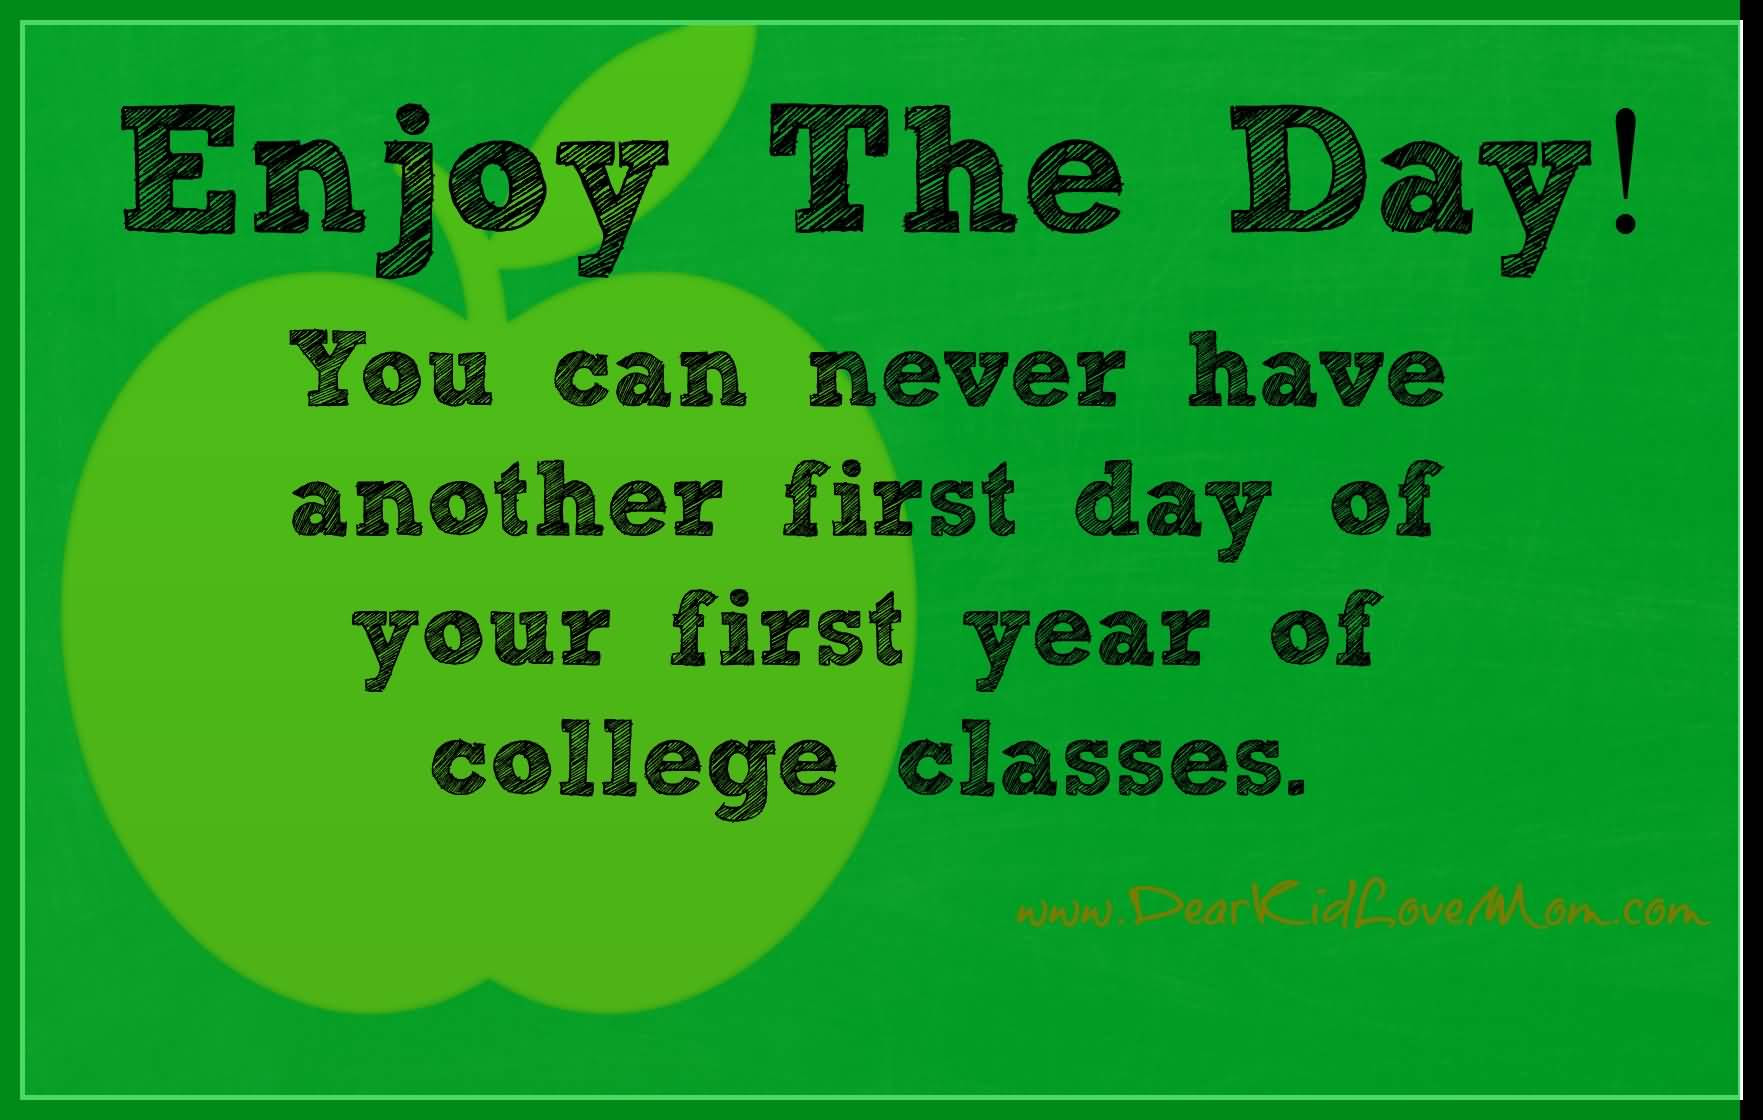 First Day Of College Quotes Meme Image 15 Quotesbae